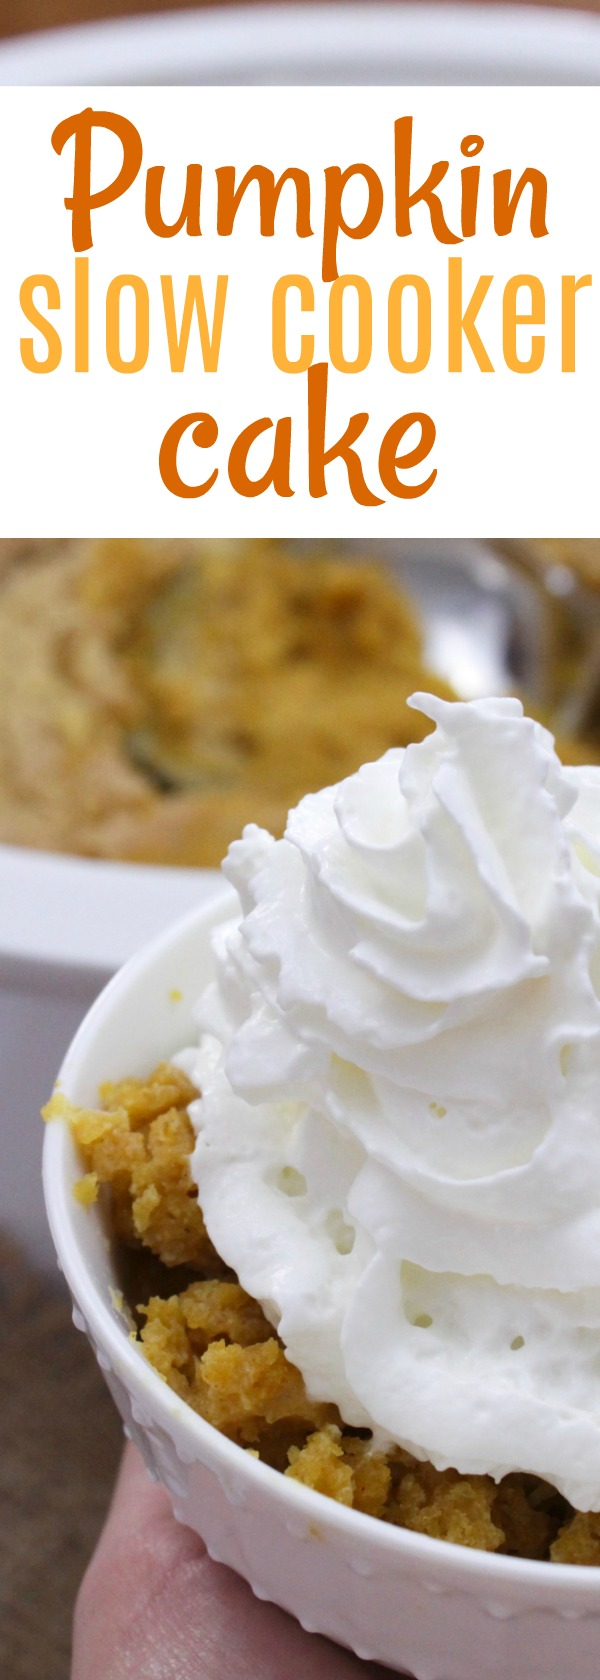 Enjoy this pumpkin dump cake recipe, crockpot as the star! #pumpkin #fall #everythingpumpkin #psl #dessert #slowcooker #slow #cooker #falldessert #hotdessert #crockpot #crockpot #dessert